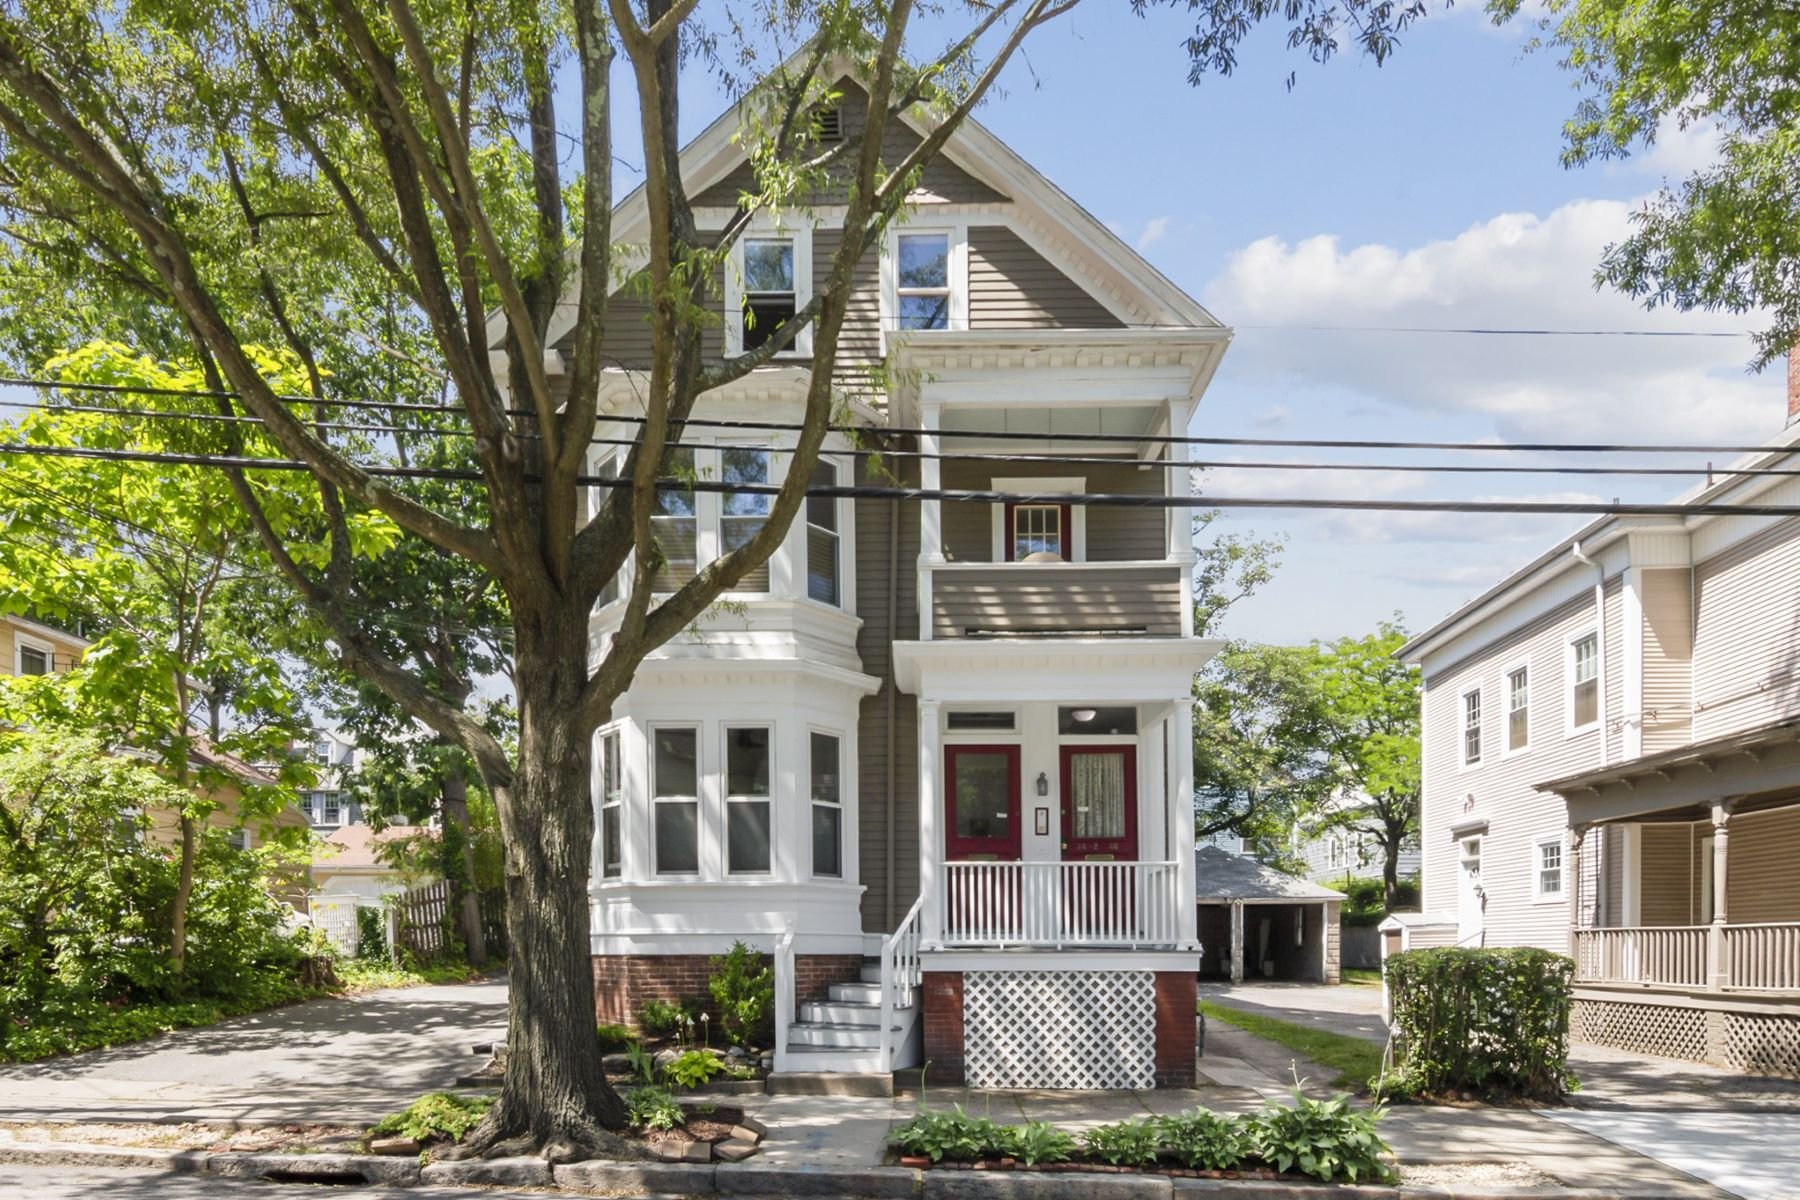 Condominiums for Sale at 44 Pitman Street, #1, East Side Of Providence, RI 44 Pitman Street, 1 Providence, Rhode Island 02906 United States